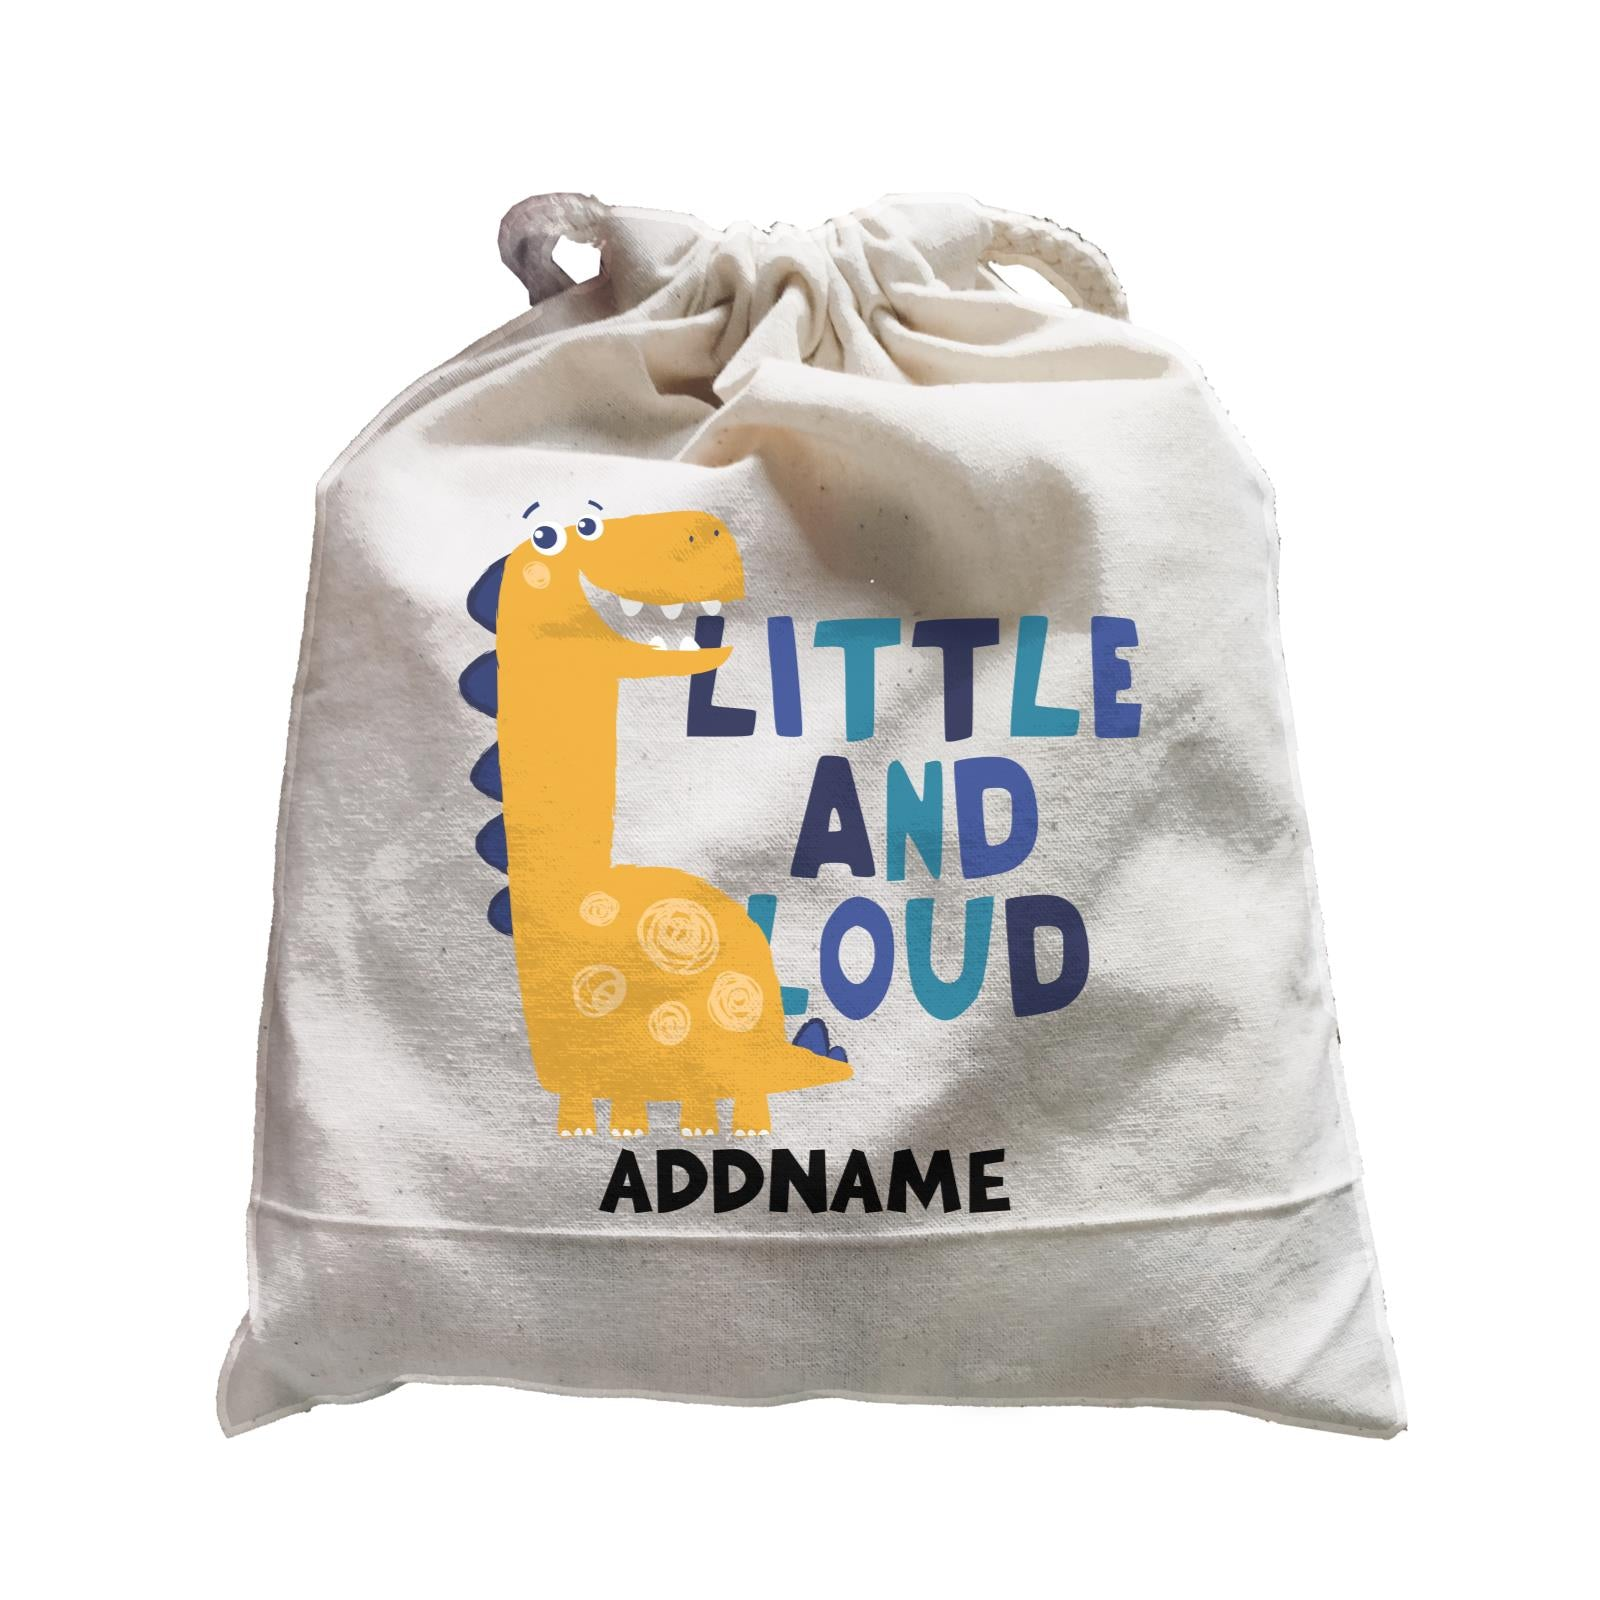 Little and Loud Dinosaur Addname Bag Satchel